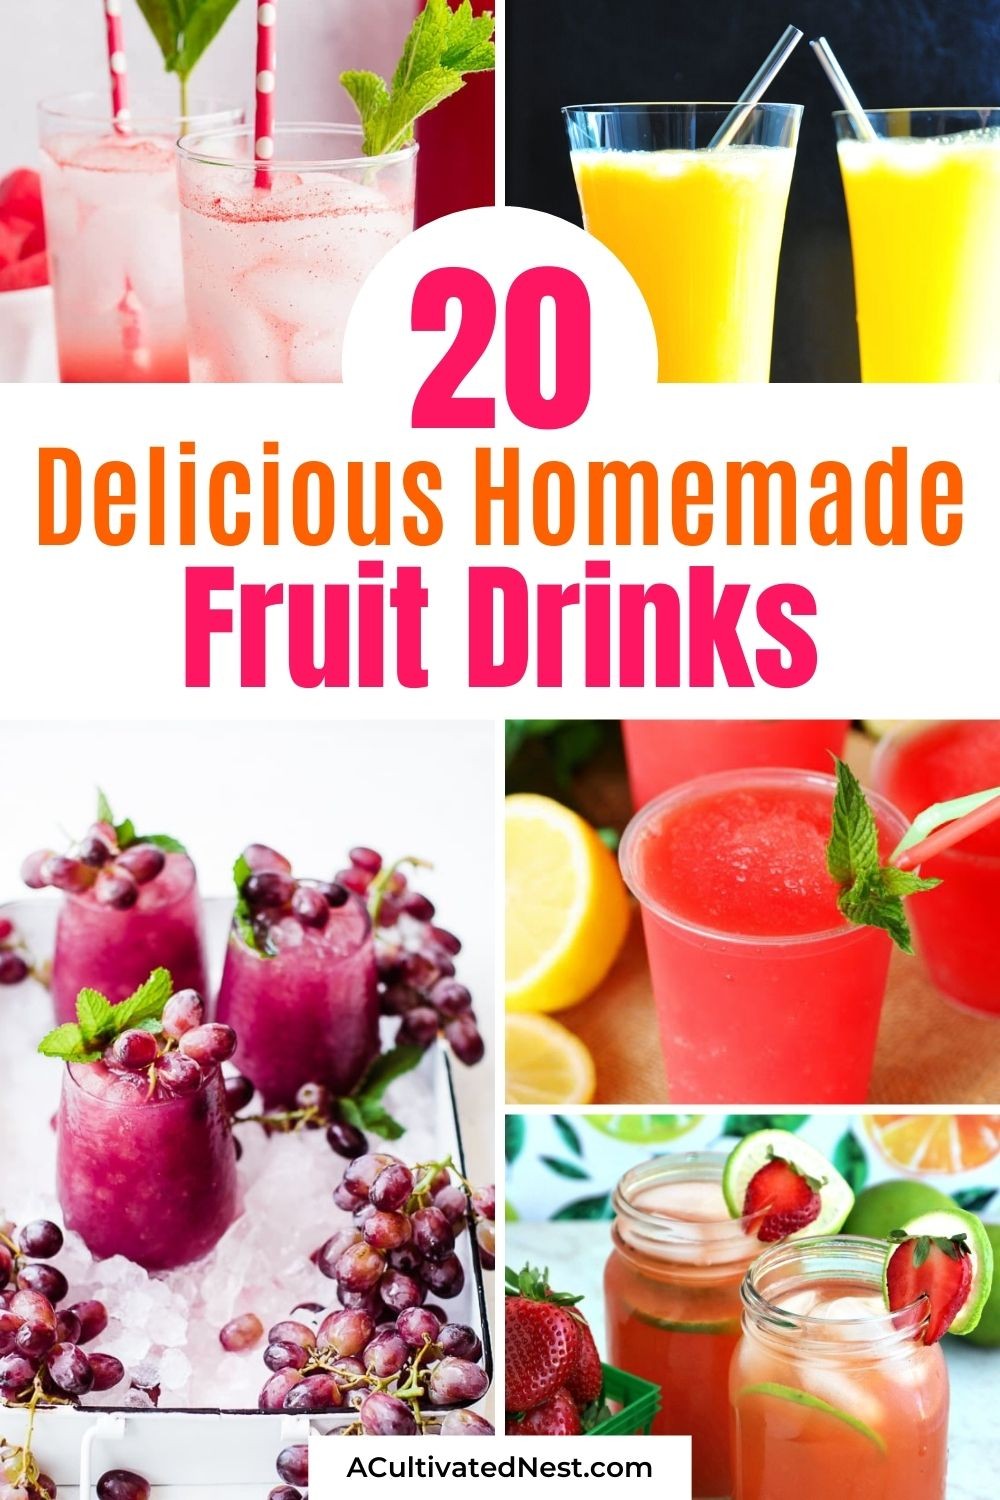 20 Homemade Fruit Drink Recipes- For a delicious way to add more fruit to your diet, make some of these 20 homemade fruit drink recipes! These delicious summer drinks will cool you off and refresh you even on the hottest days! | drinks made with real fruit, #fruitDrinks #drinkRecipes #drinks #fruitRecipes #ACultivatedNest